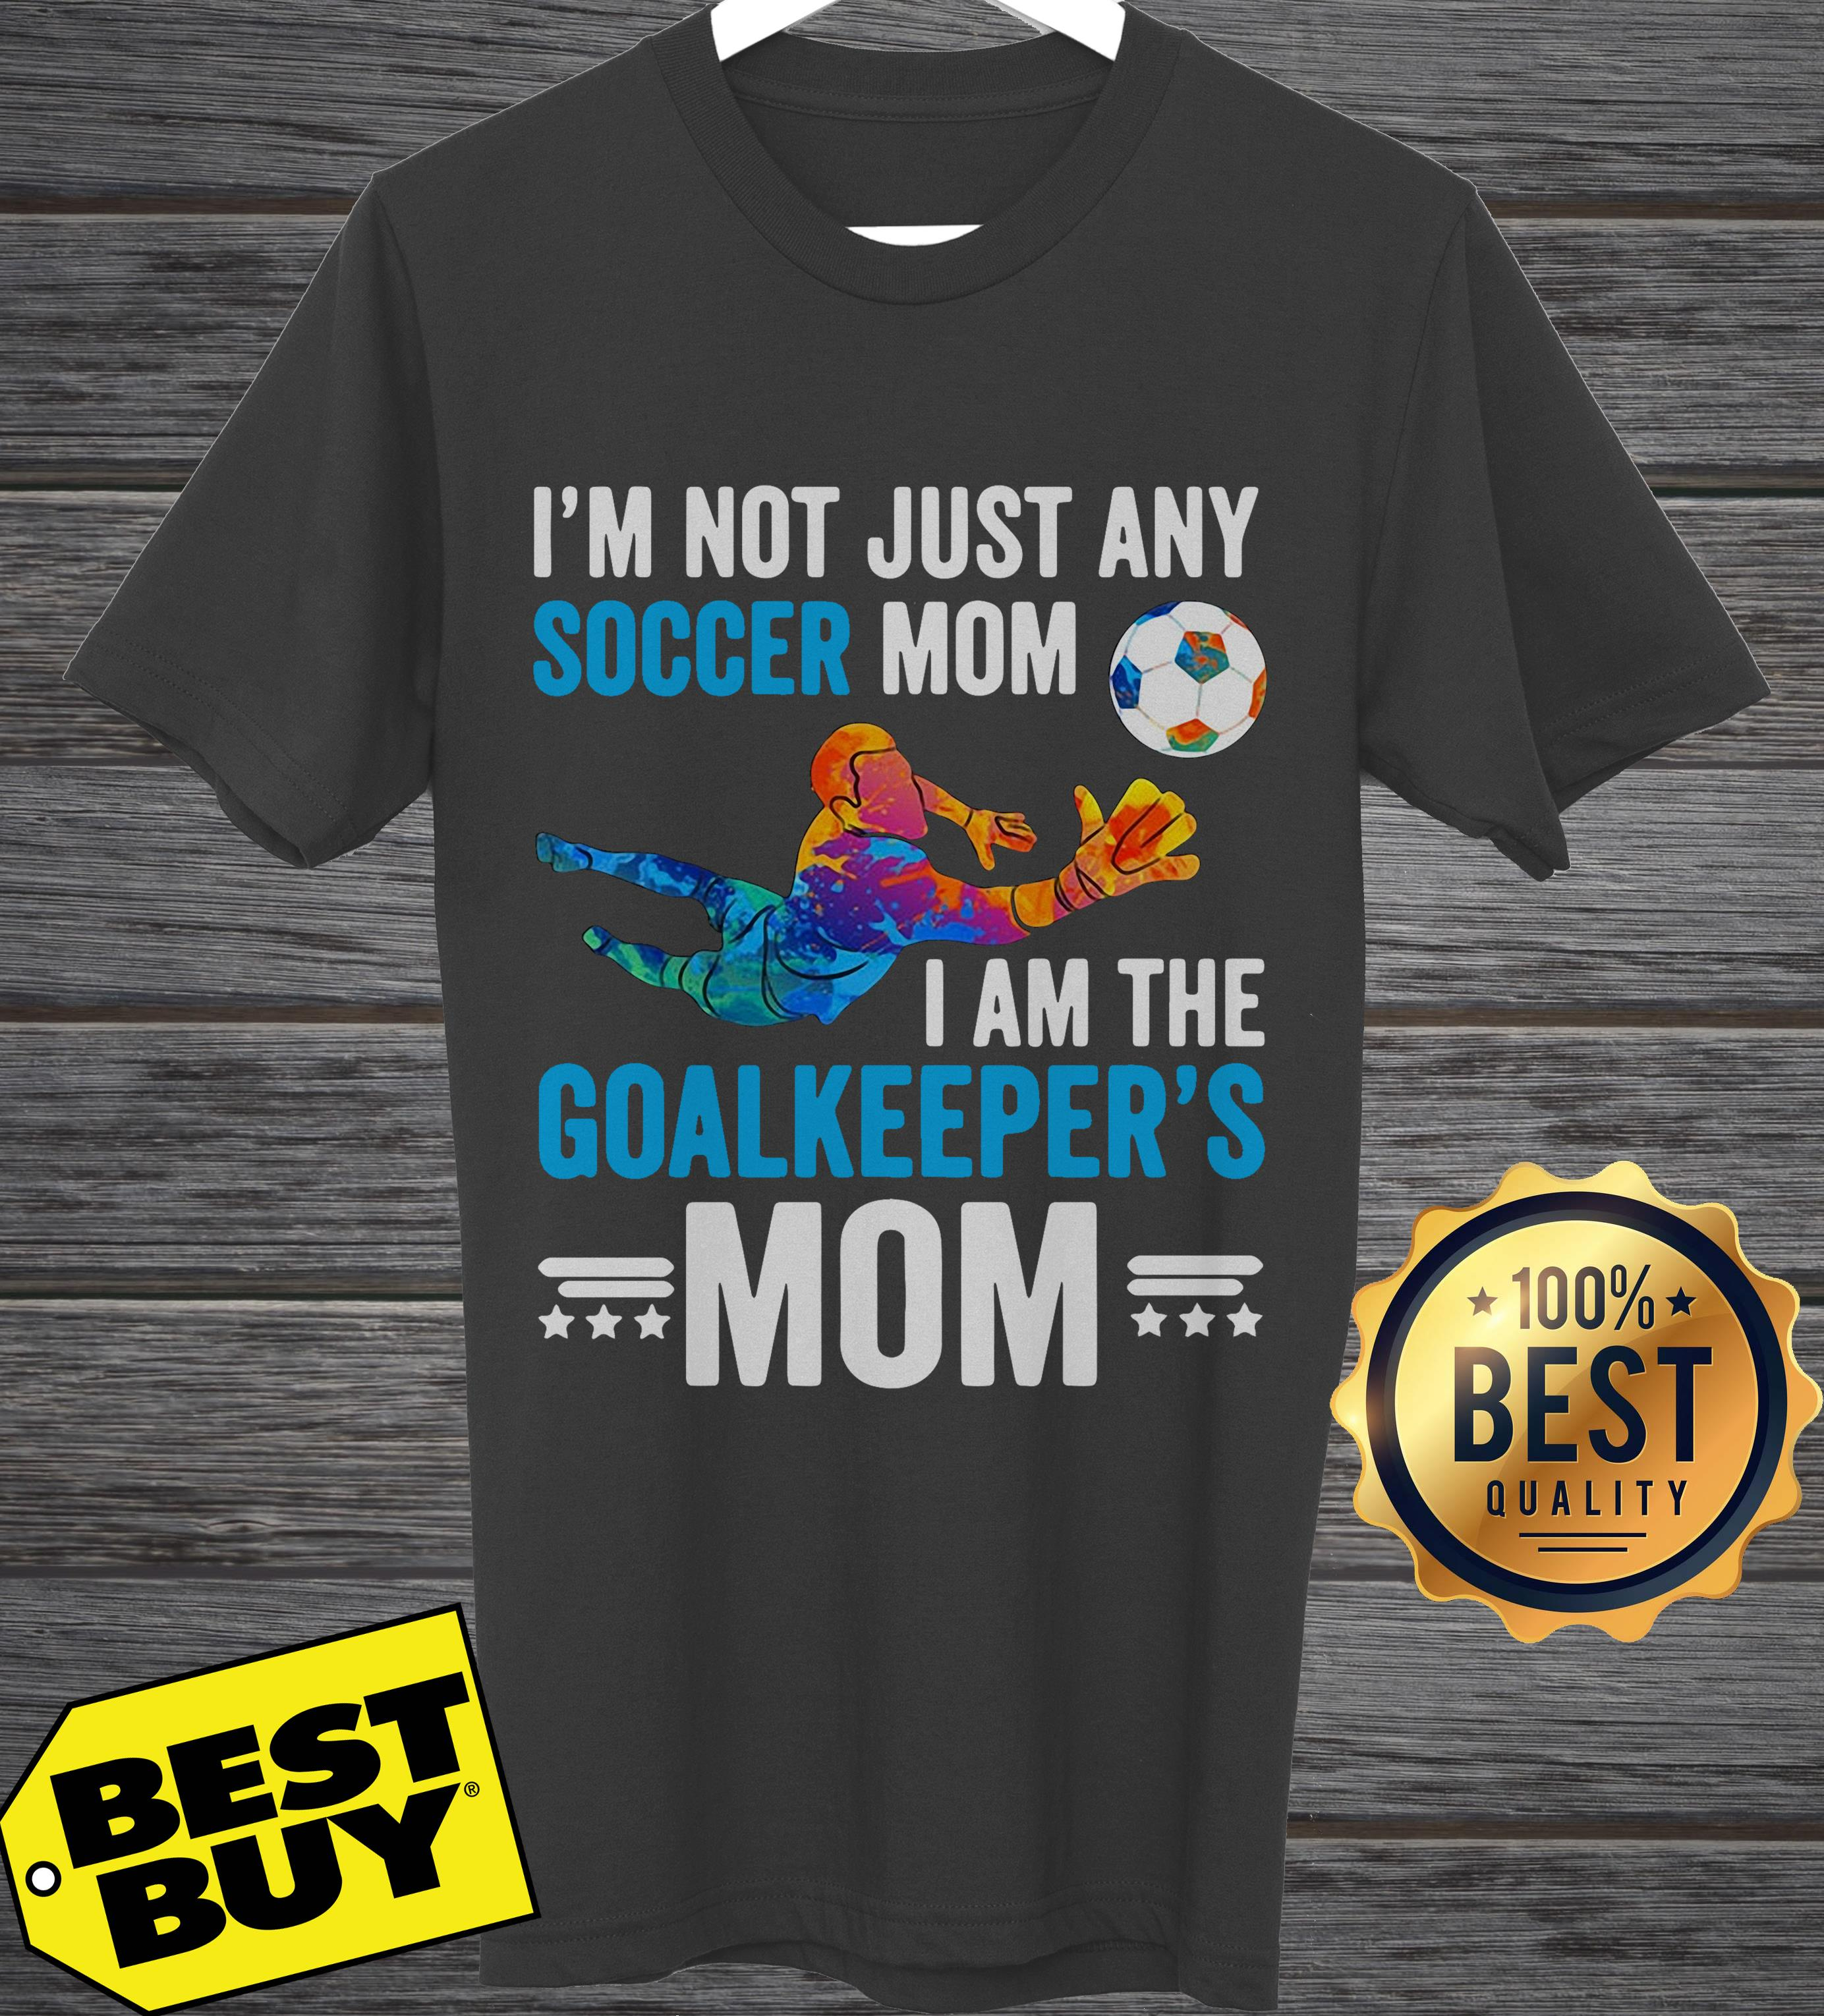 I'm Not Just Any Soccer Mom I Am The Goalkeeper's Mom hoodie